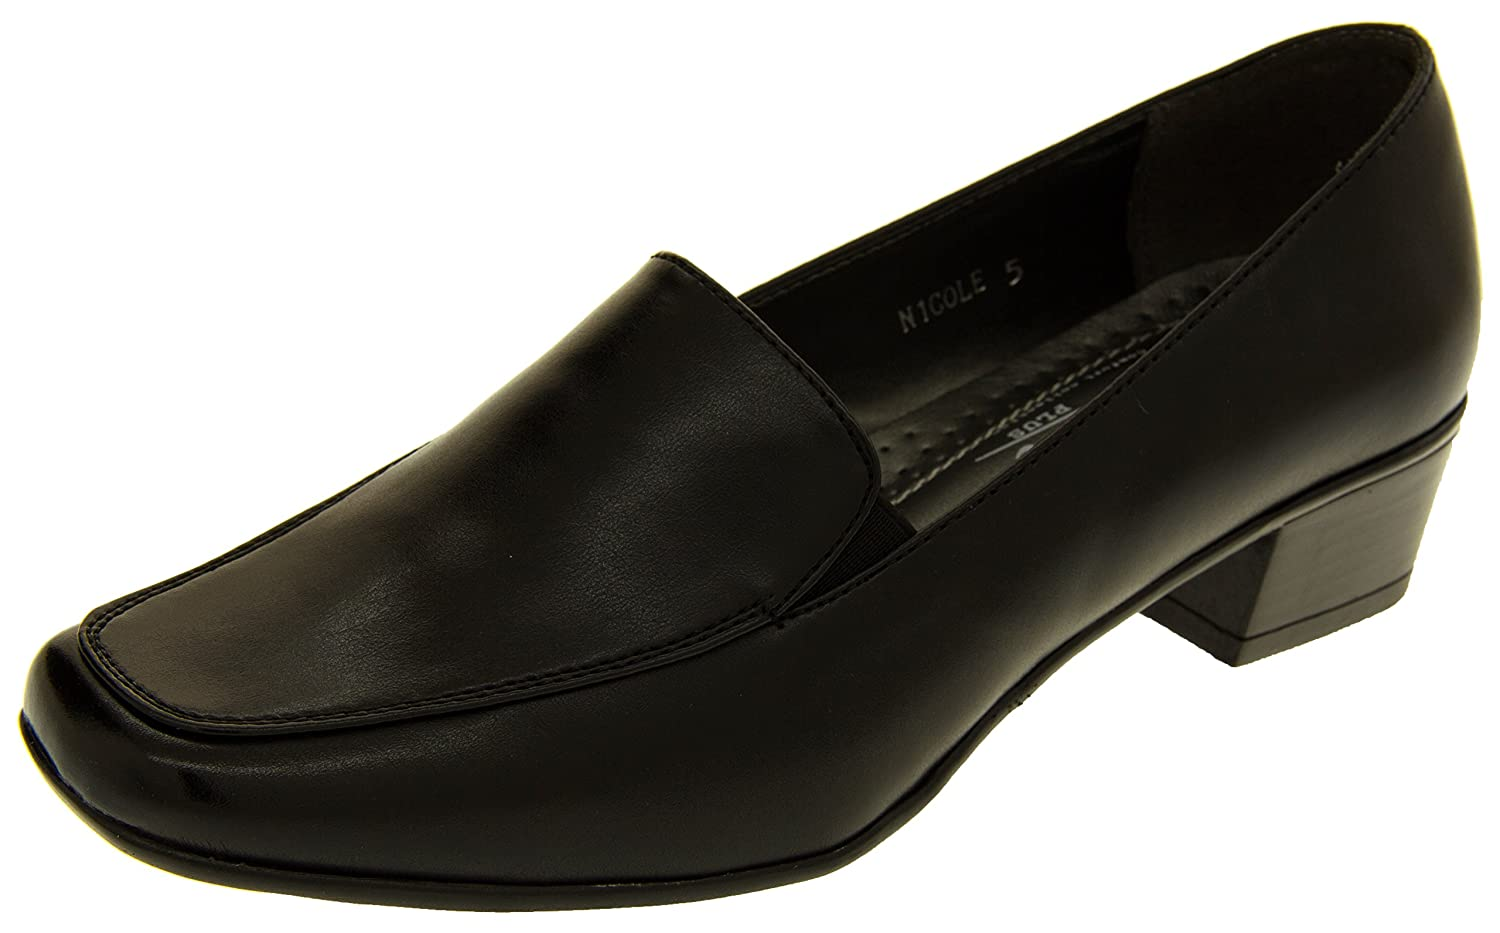 Annabelle Womens Nicole Faux Leather Formal Loafer Pumps